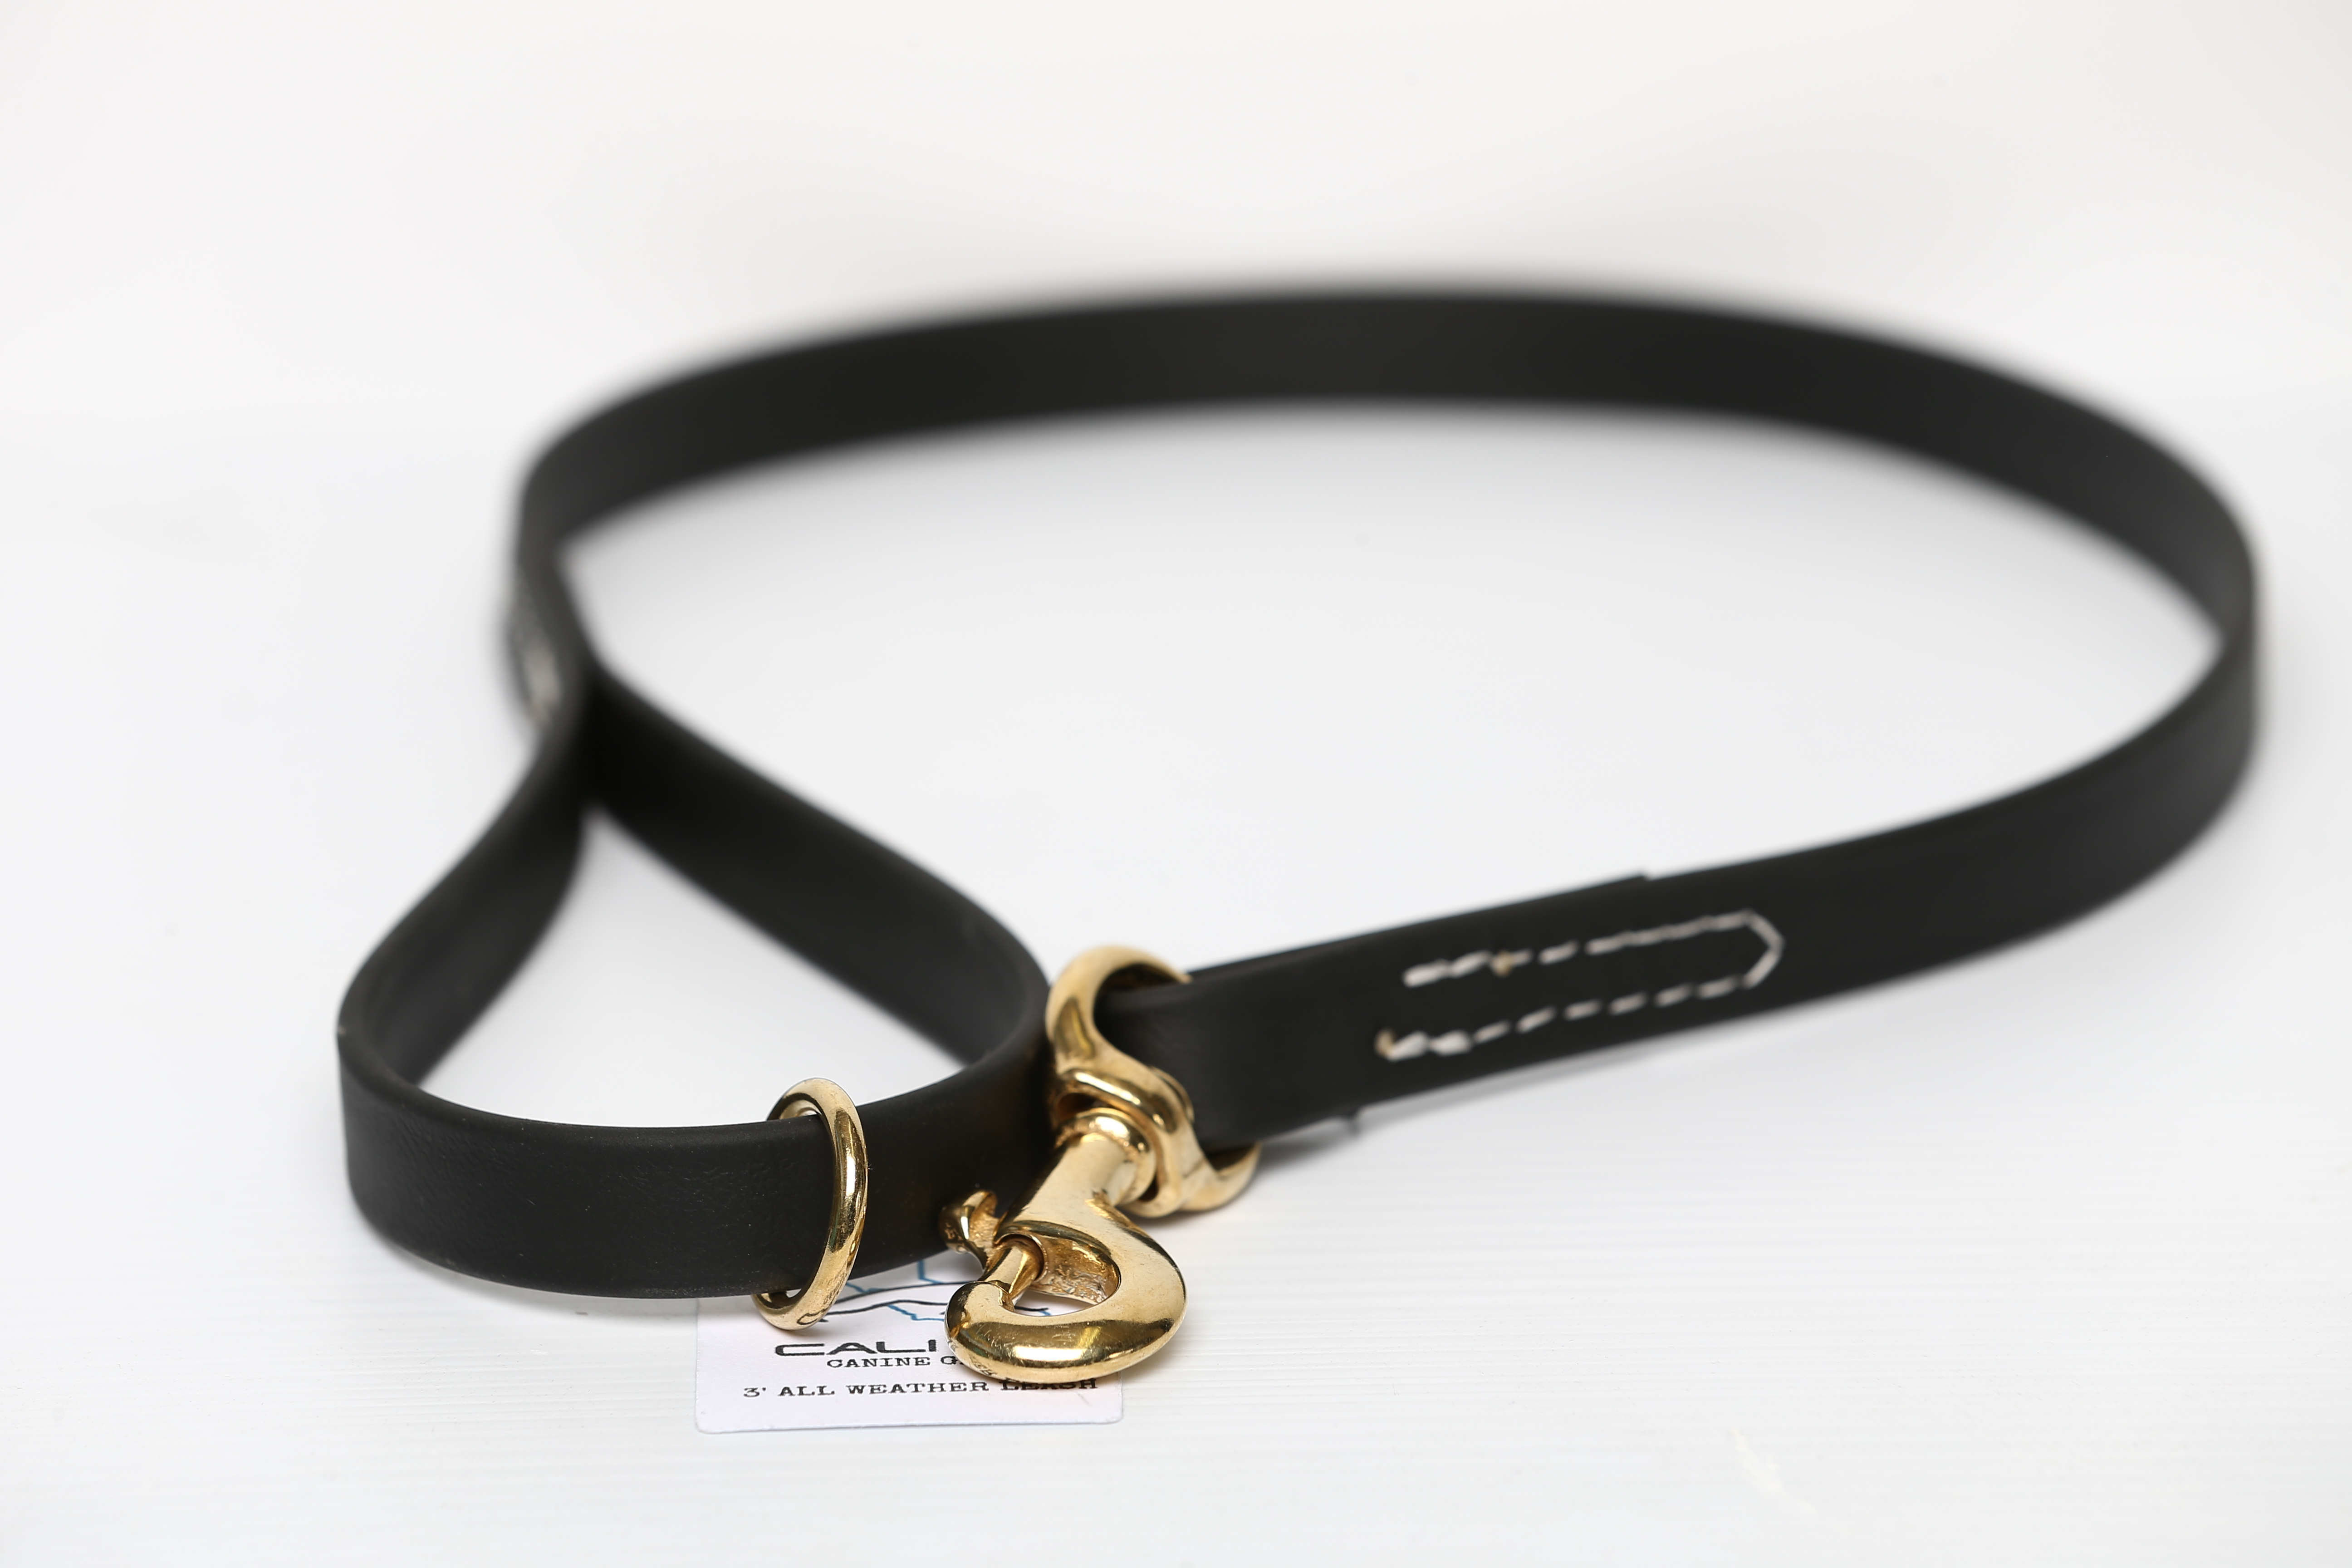 3ft leash All Weather Leash LD-BL-TF